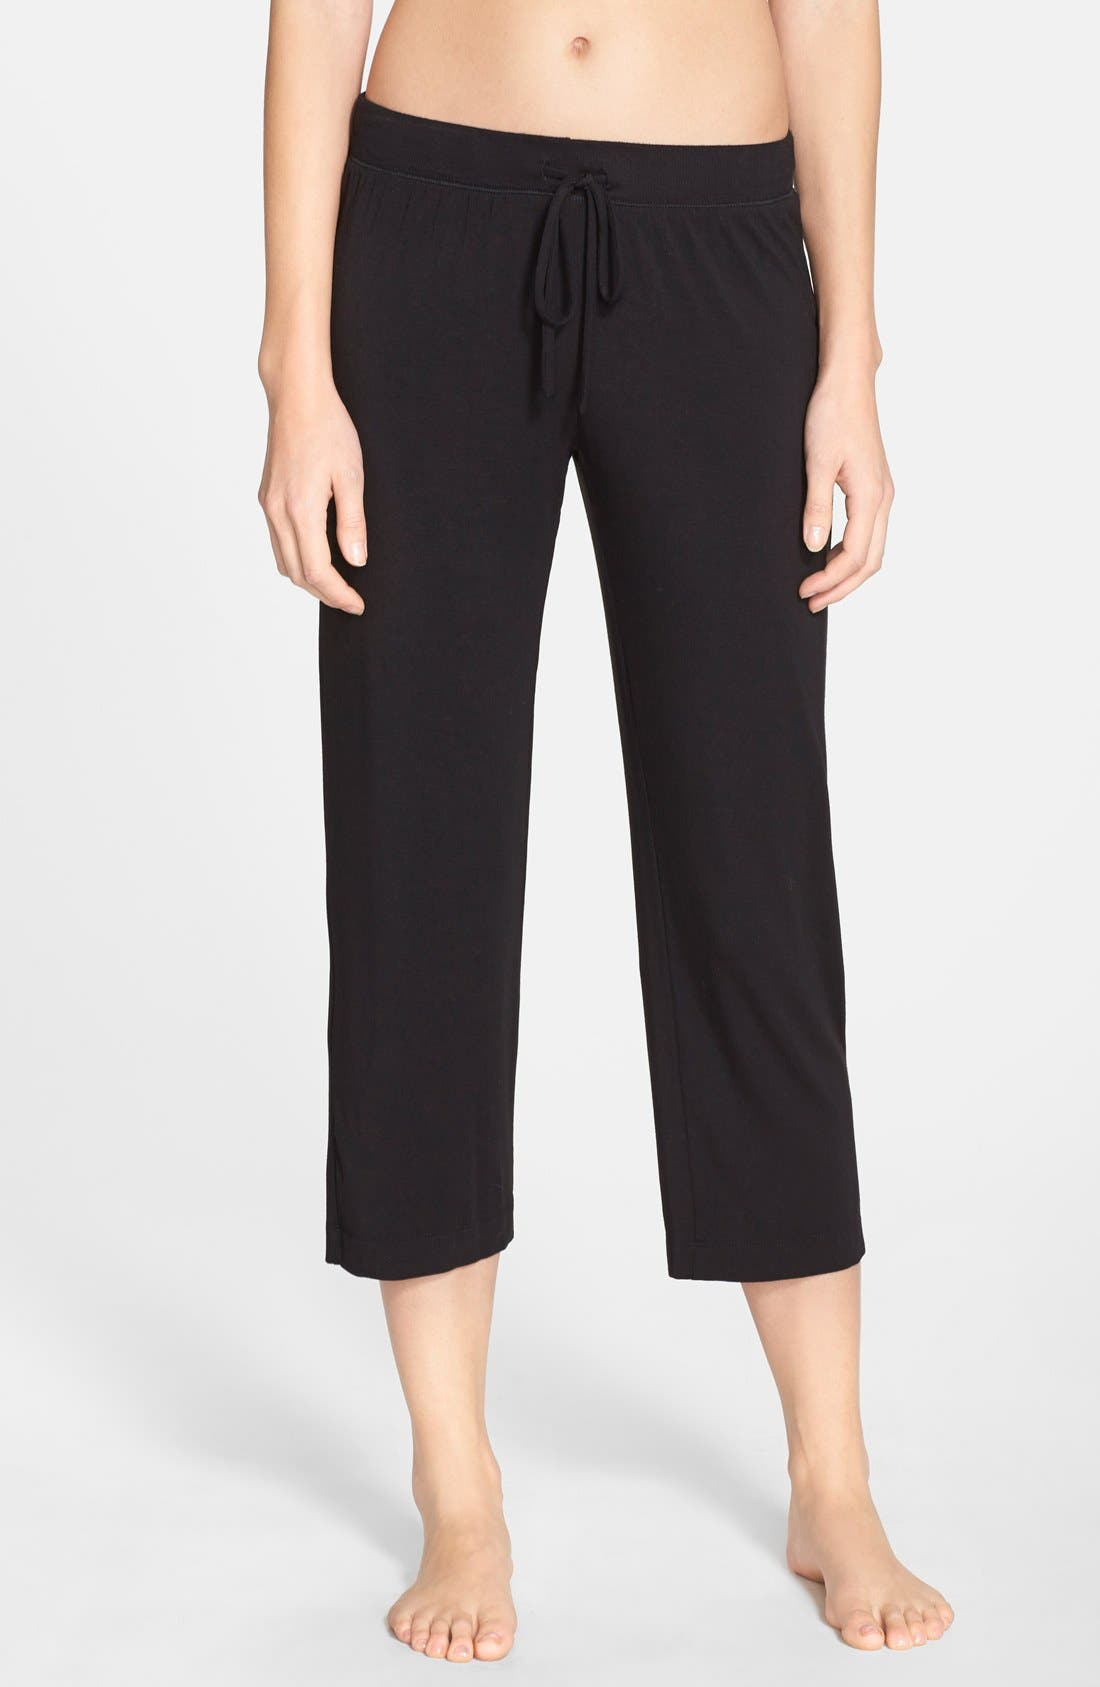 Alternate Image 1 Selected - DKNY 'Urban Essentials' Capri Pants